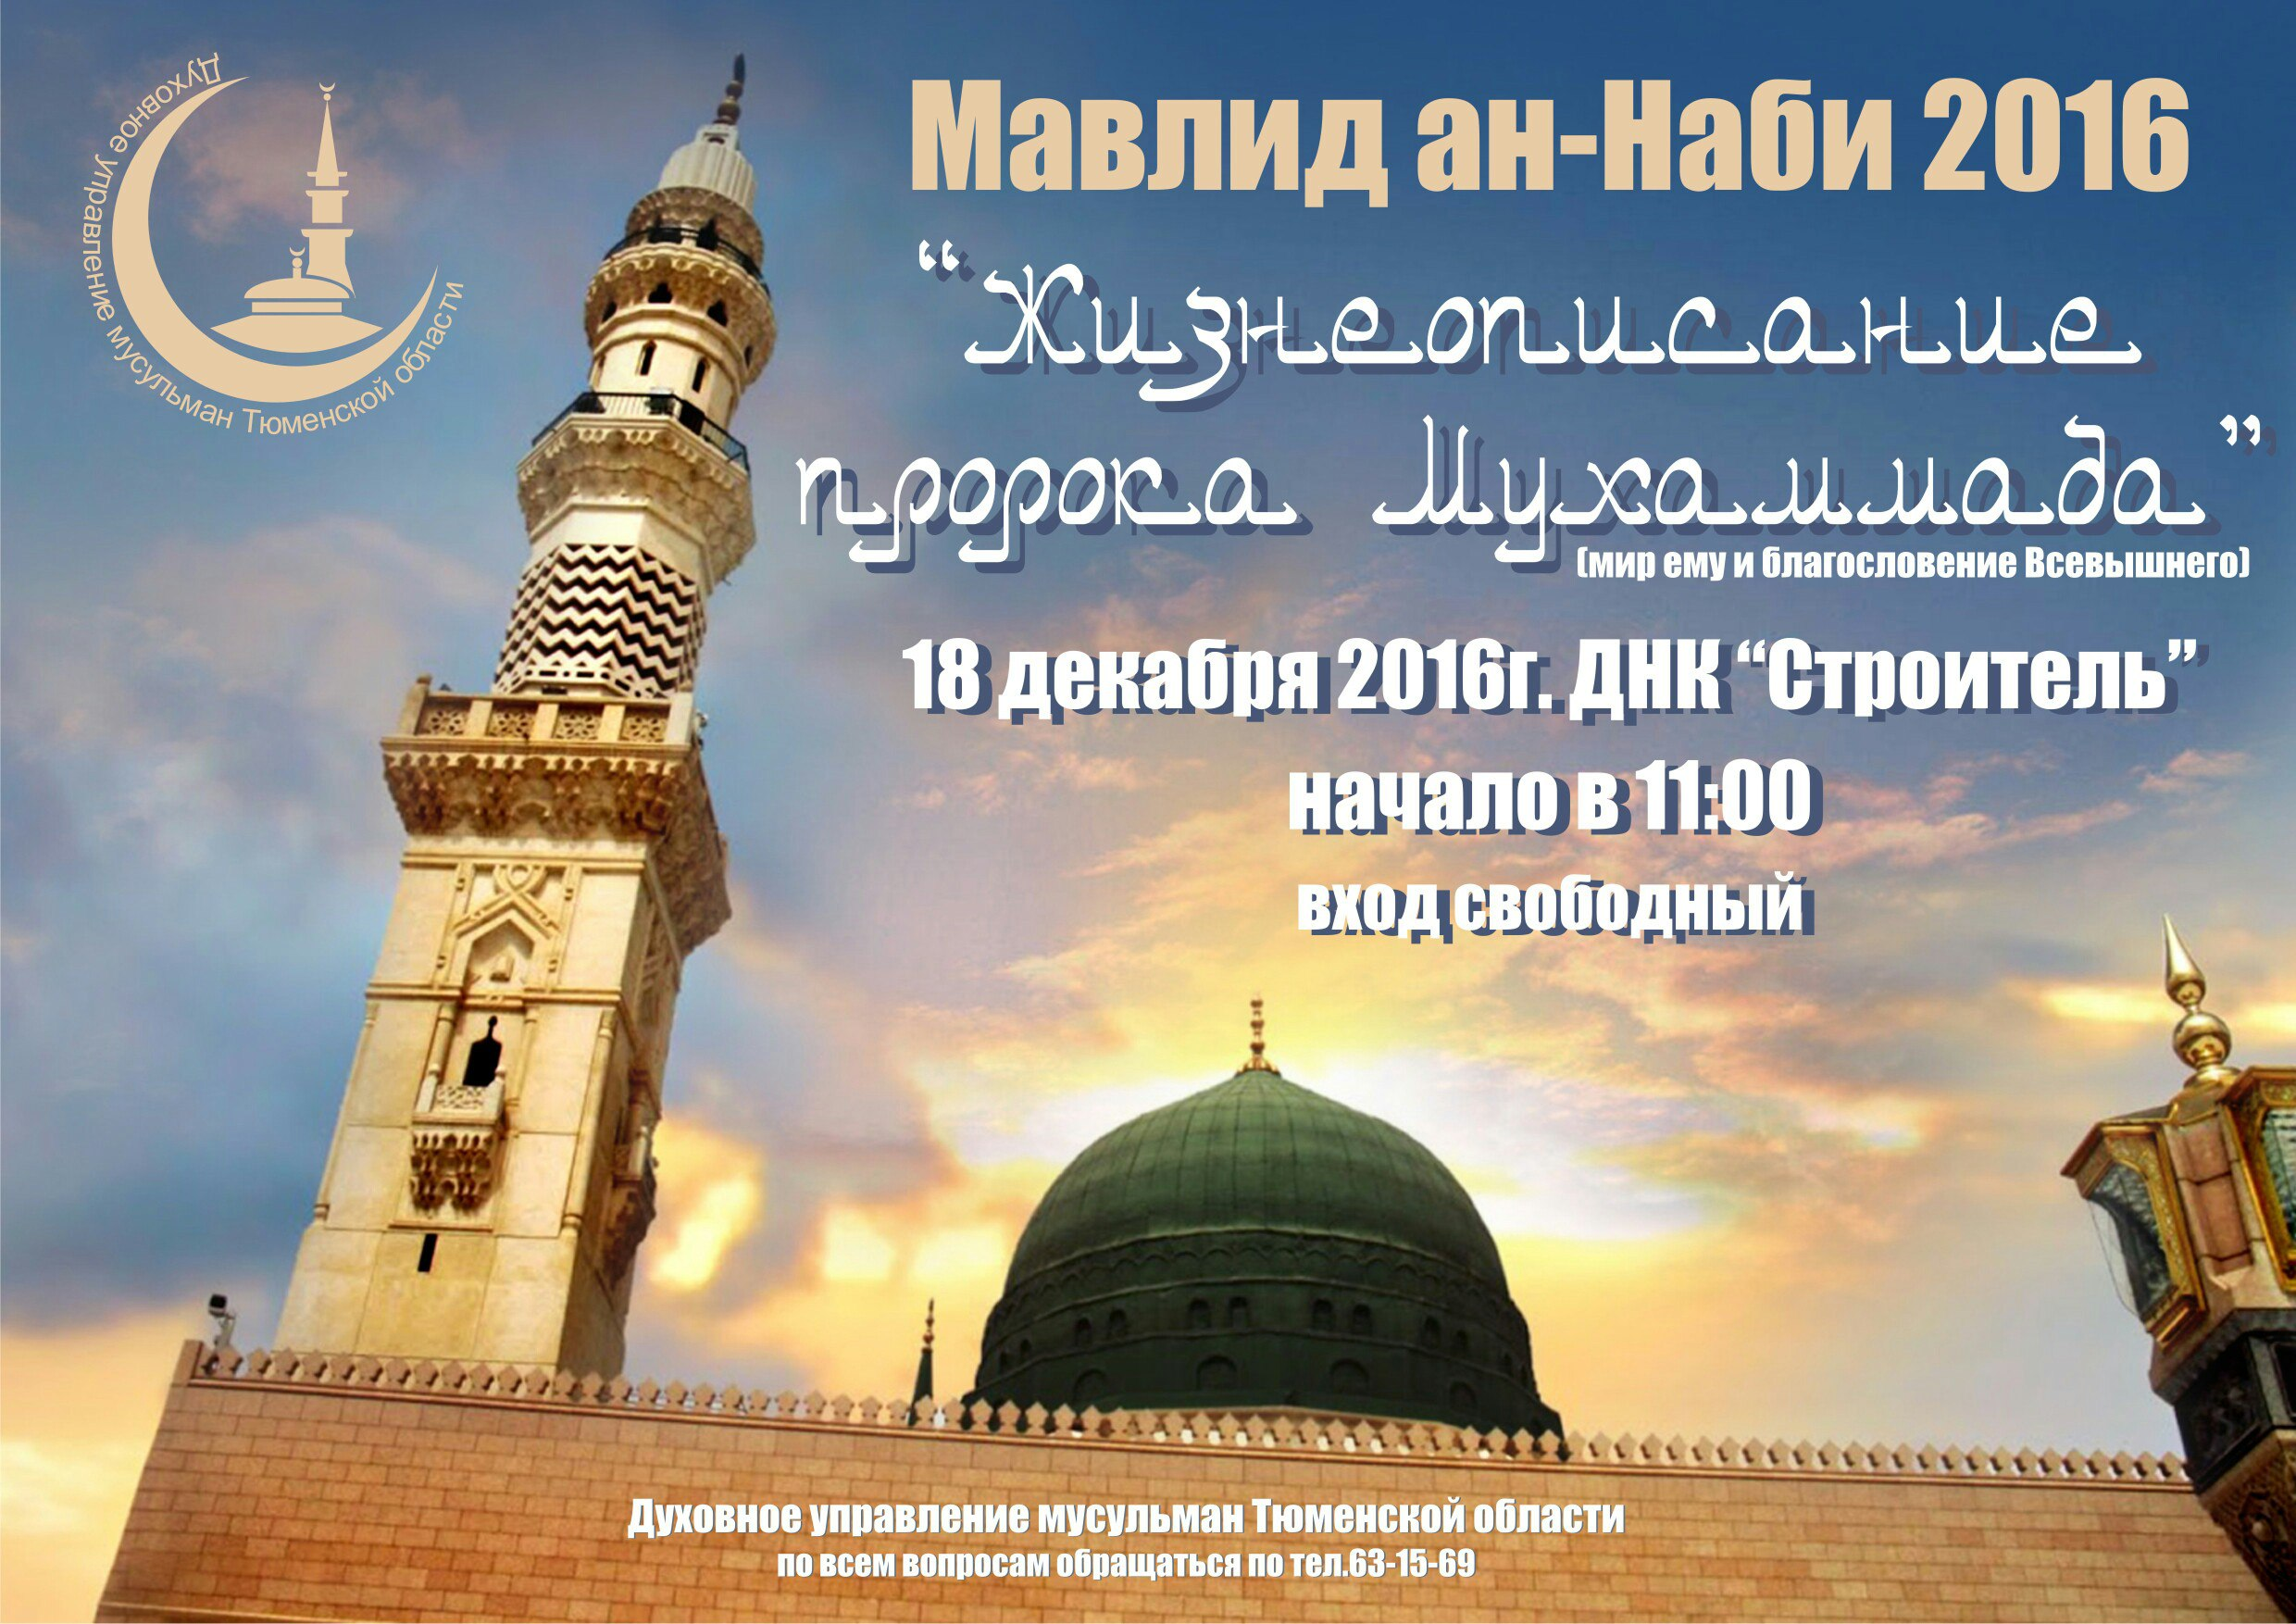 Mawlid in Tyumen